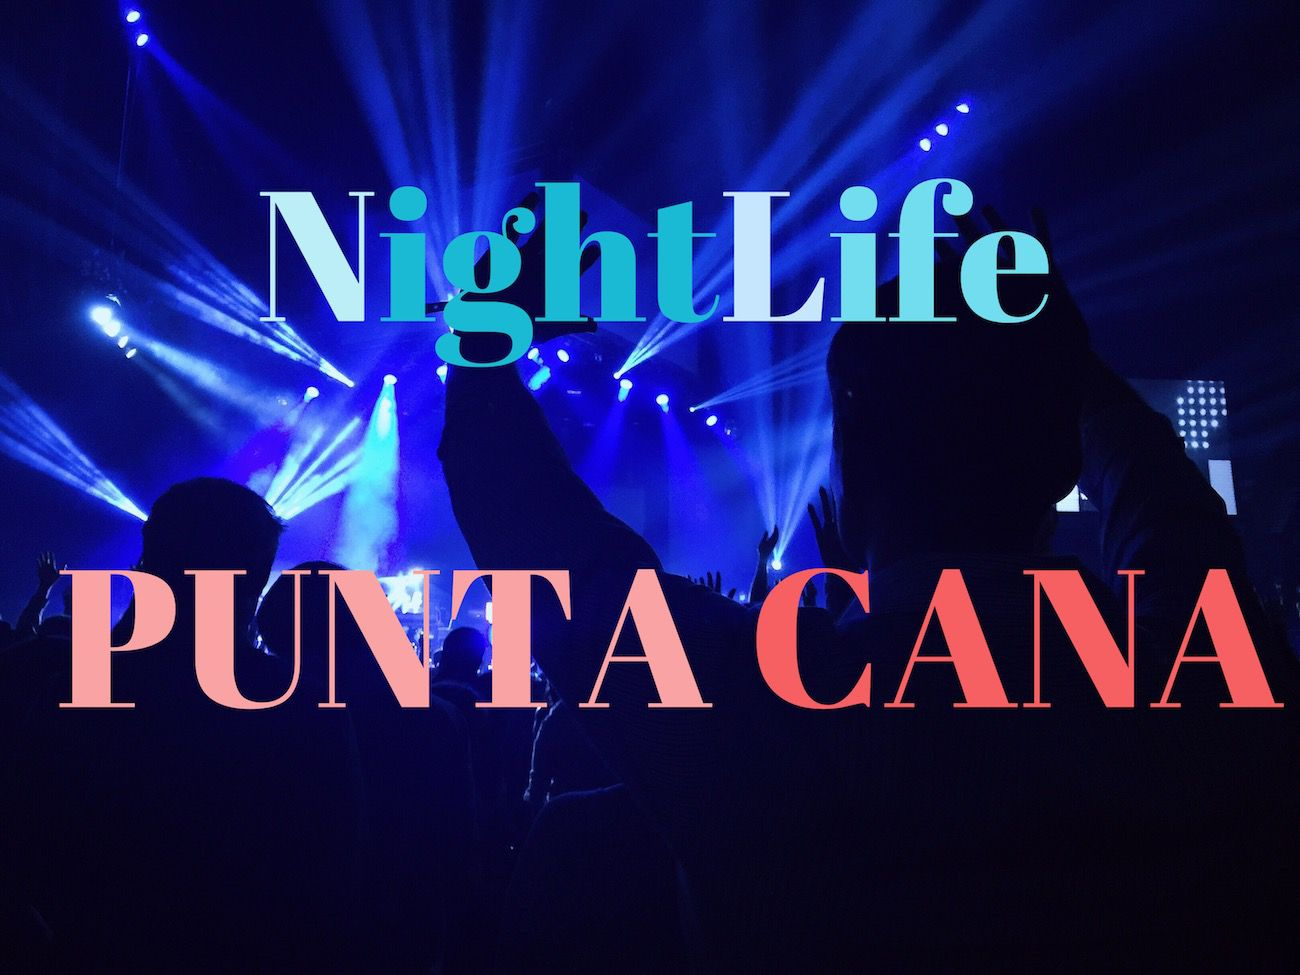 Nightlife in Punta Cana